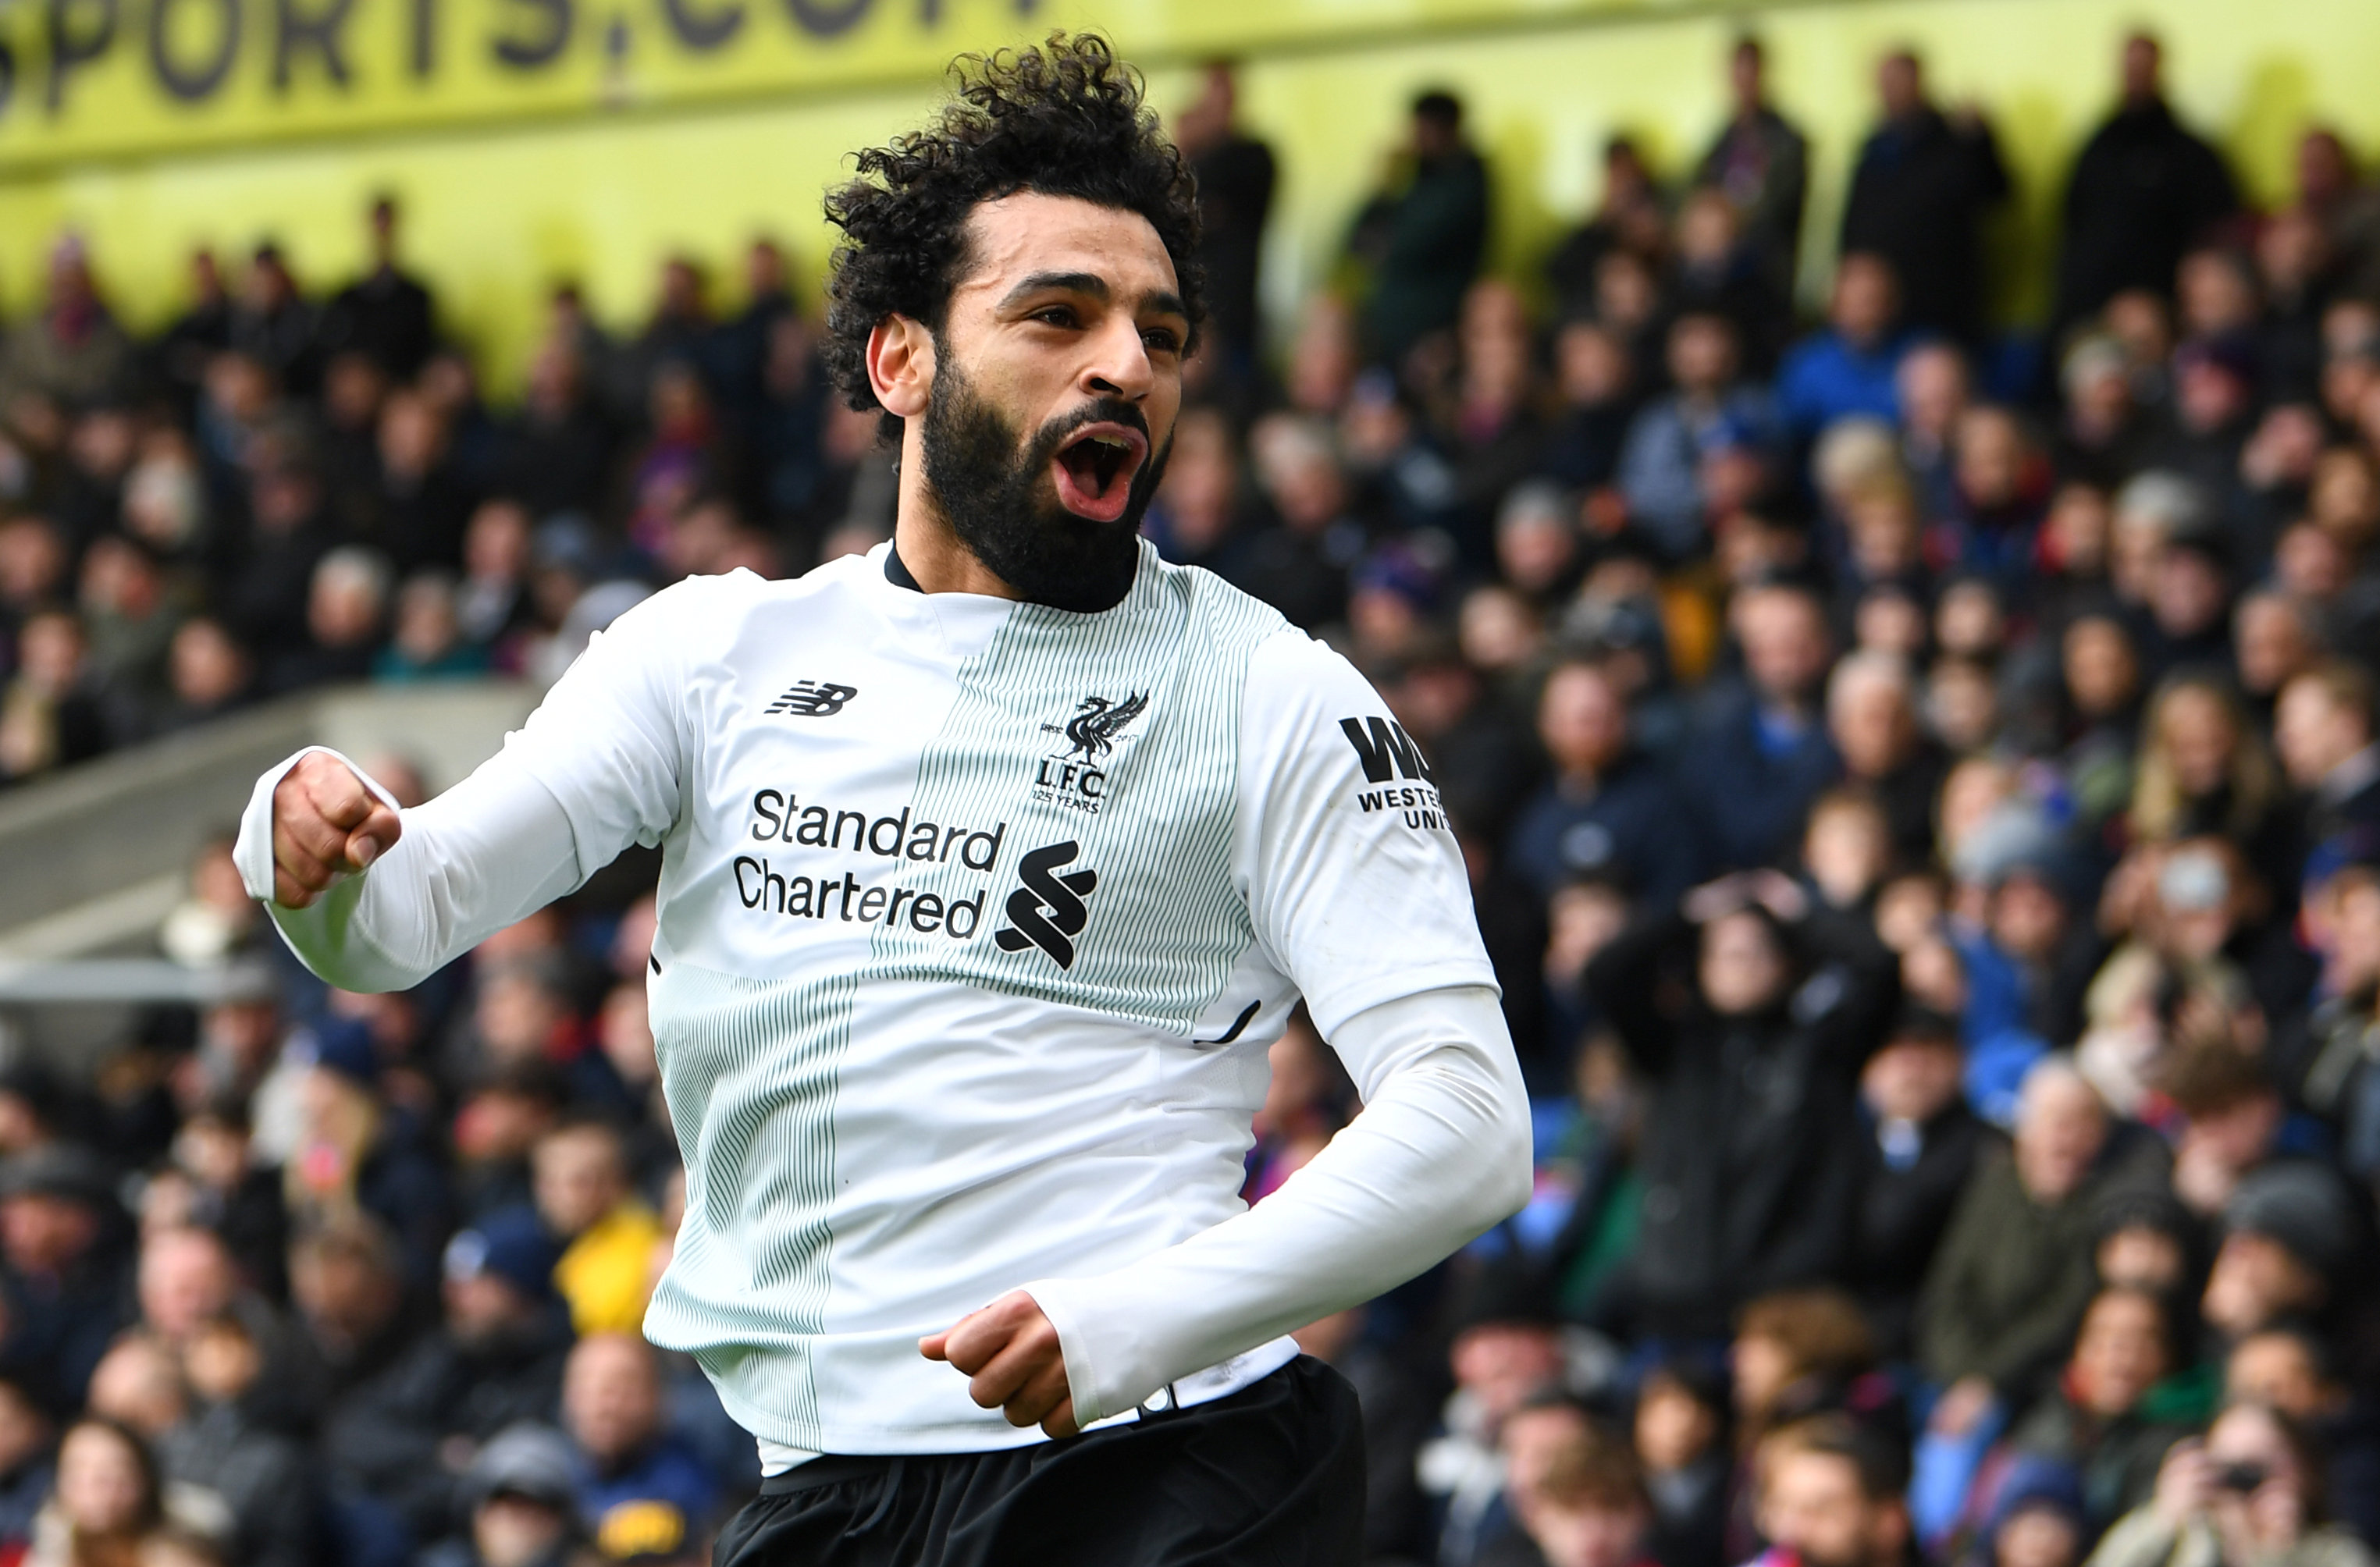 Football: In-form Salah can destroy any defence, says Van Dijk